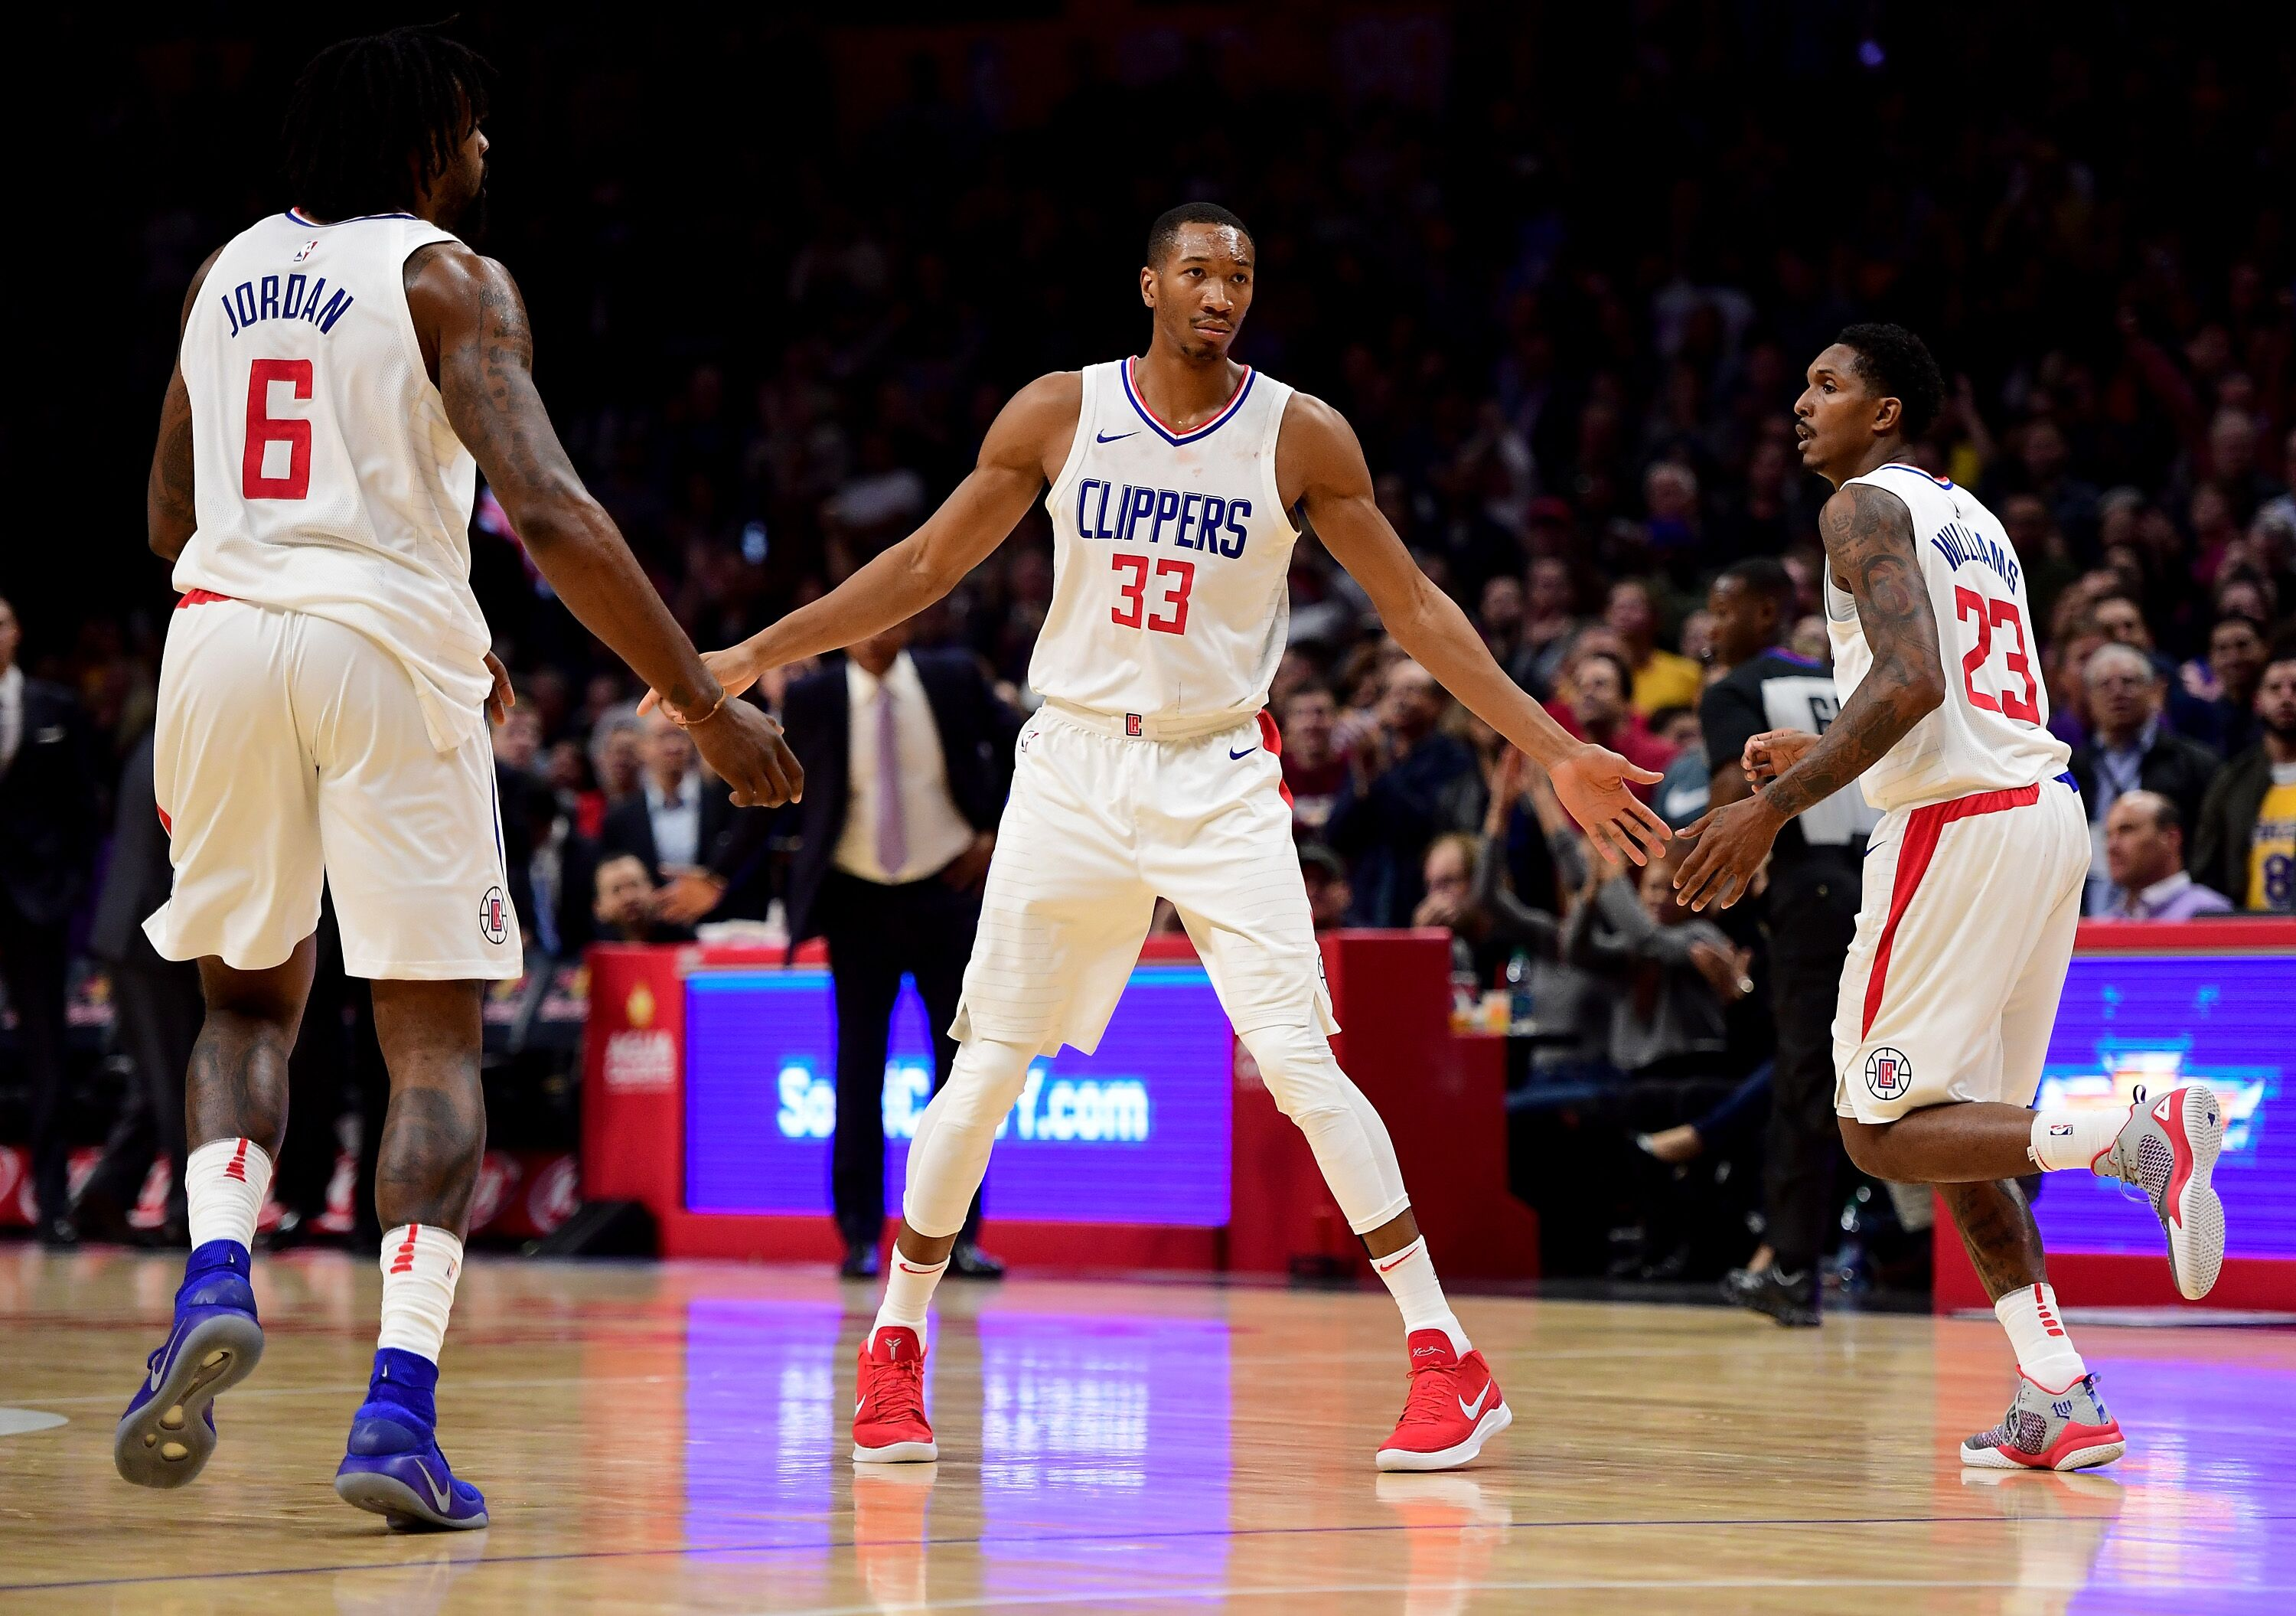 880672686-los-angeles-lakers-v-los-angeles-clippers.jpg